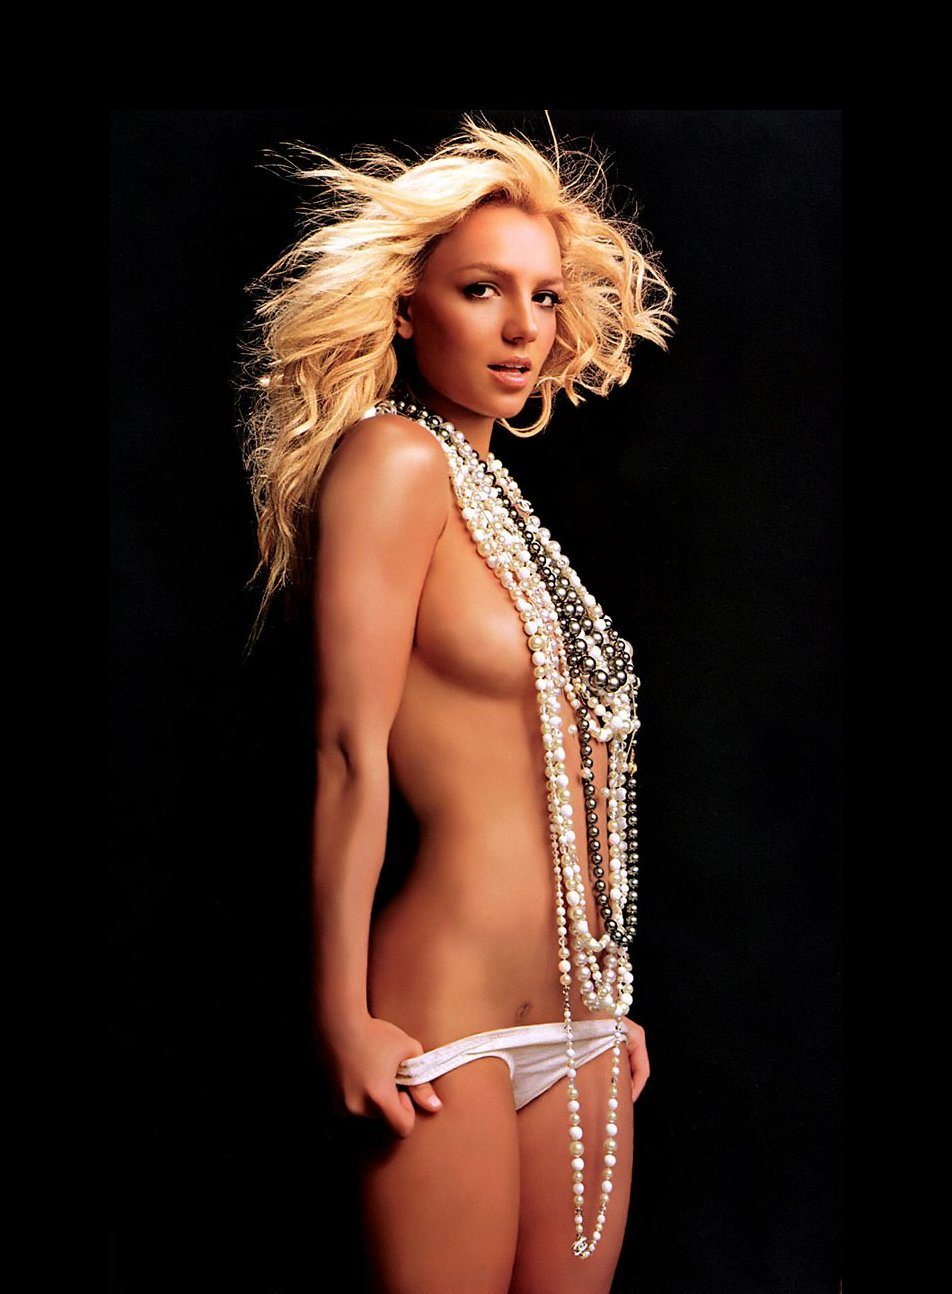 Ultra Hot - Britney Spears - Music Legend - Full-Gloss Photograph